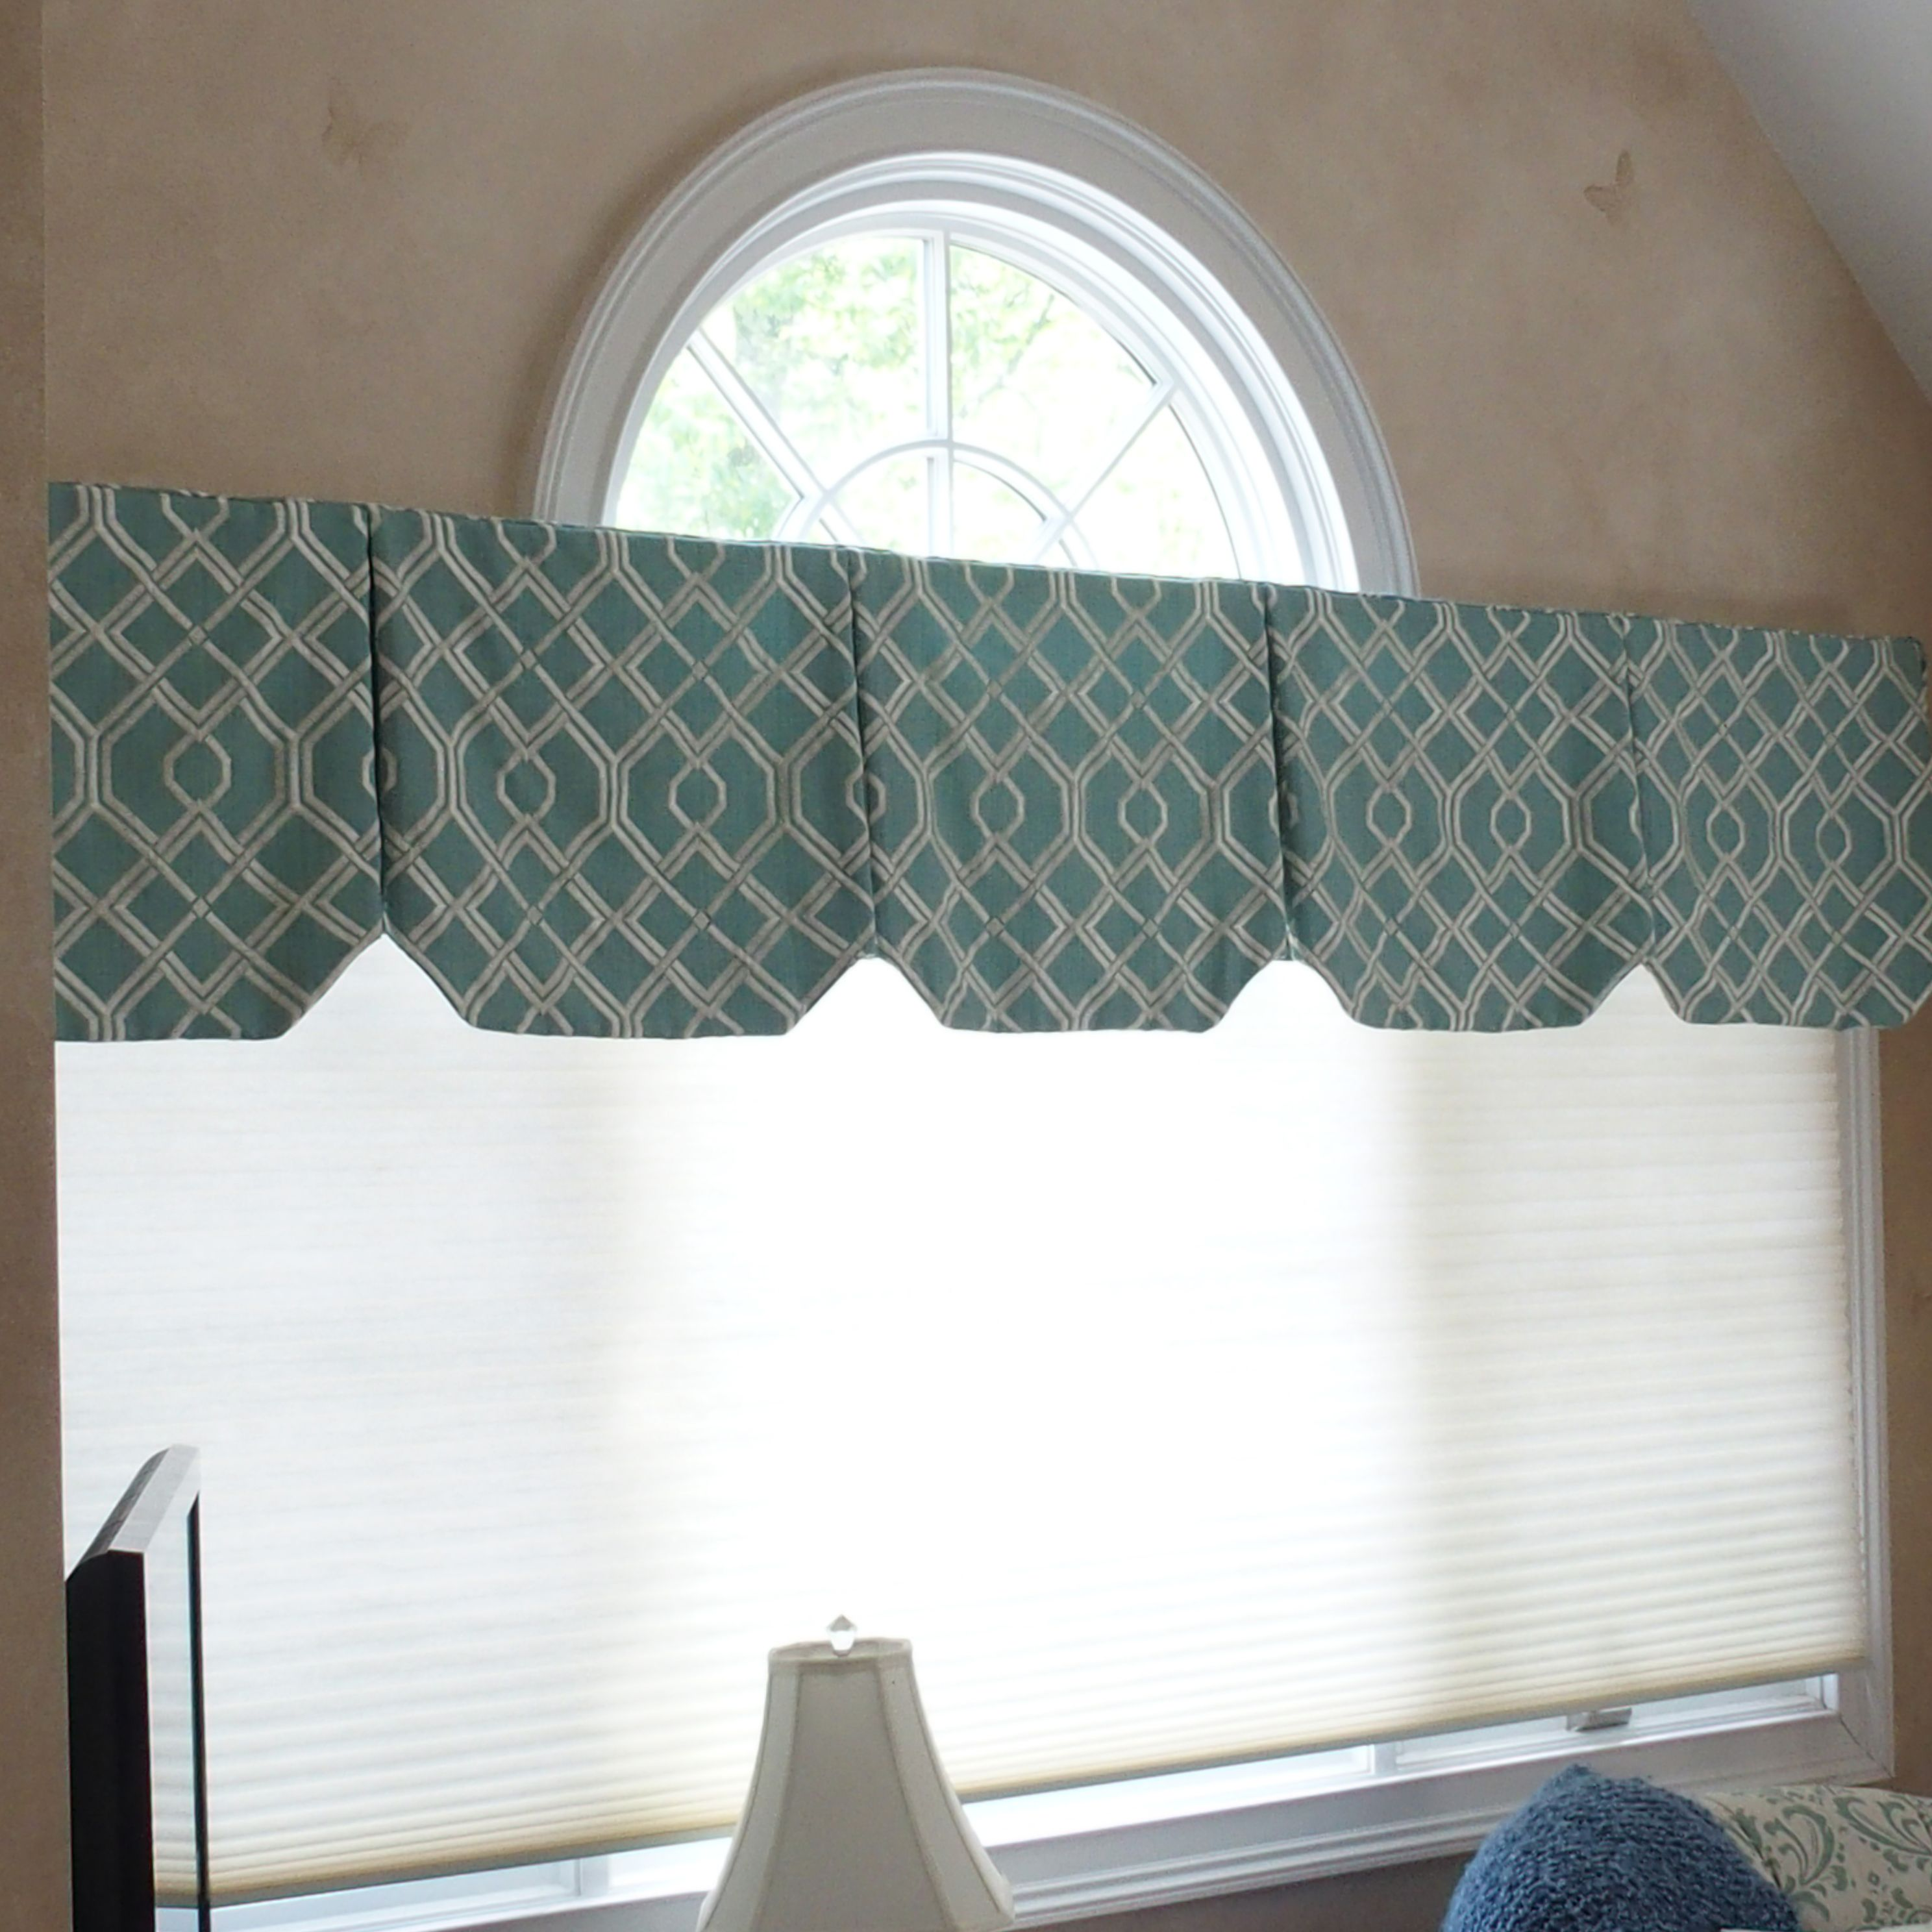 Privacy Curtain For Bedroom Box Pleat Valances With Angled Hems Decorate This Palladium Window